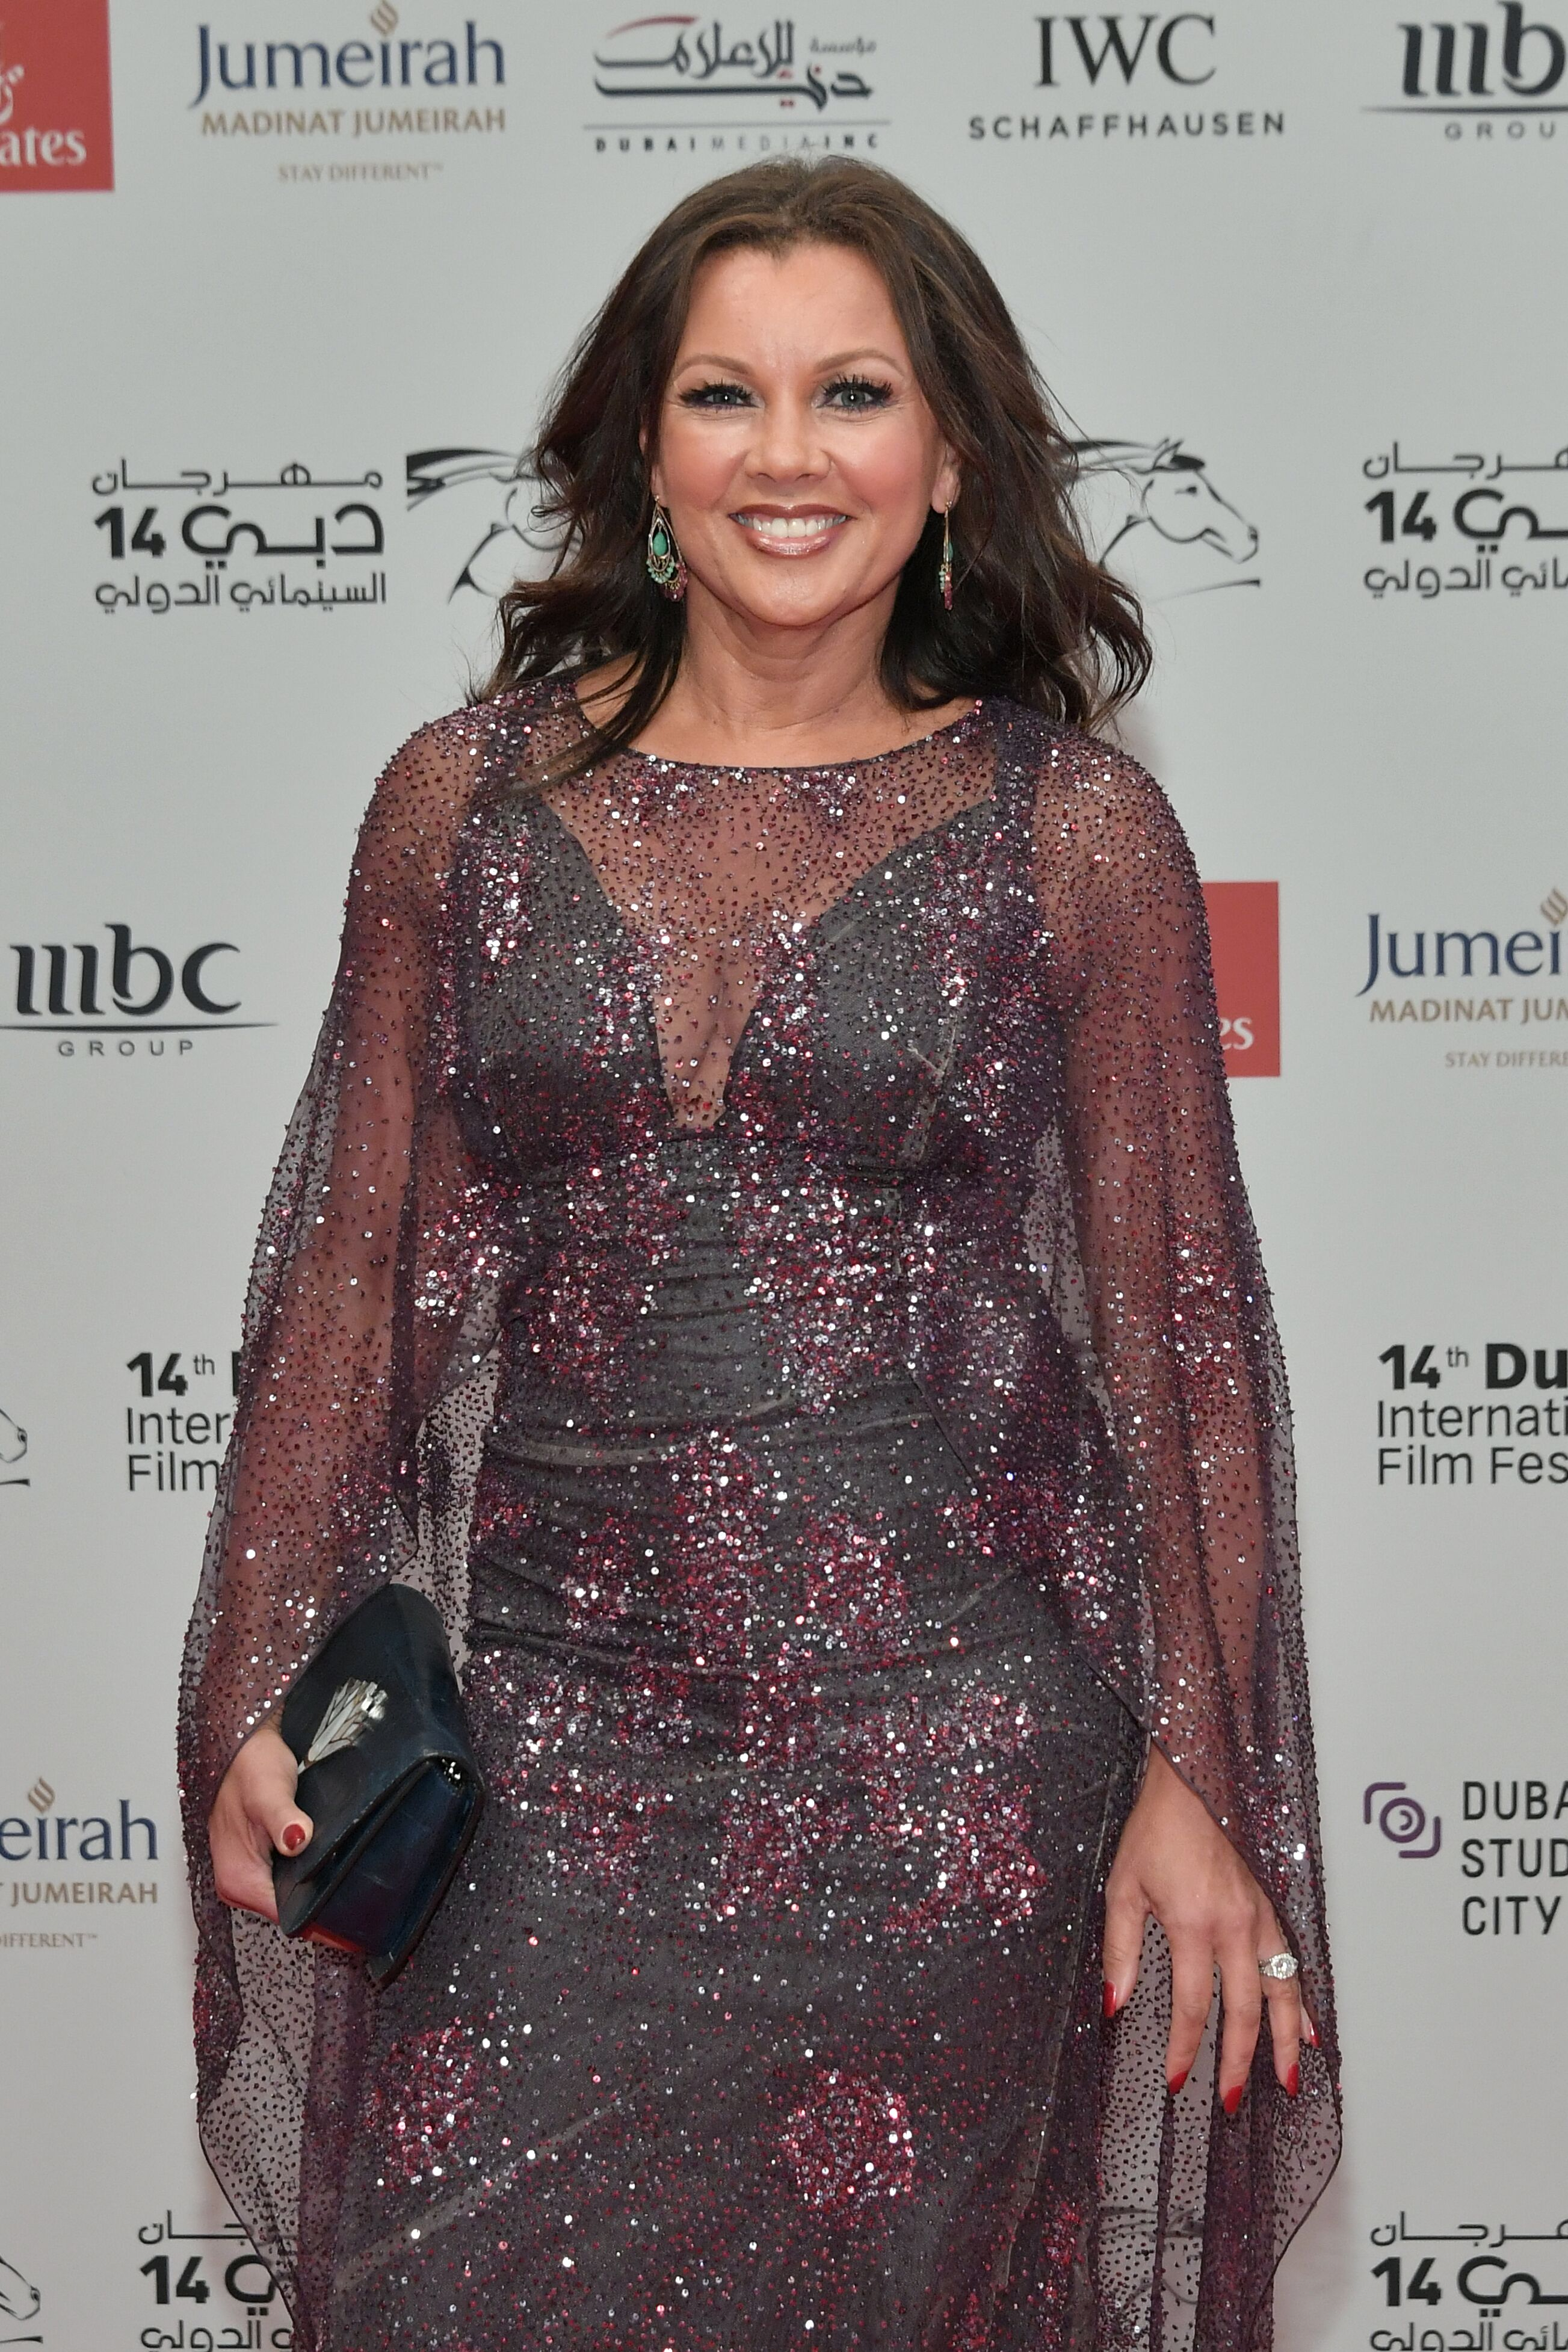 Vanessa Williams attends the Opening Night Gala of the 14th annual Dubai International Film Festival held at the Madinat Jumeriah Complex on December 6, 2017 | Photo: Getty Images